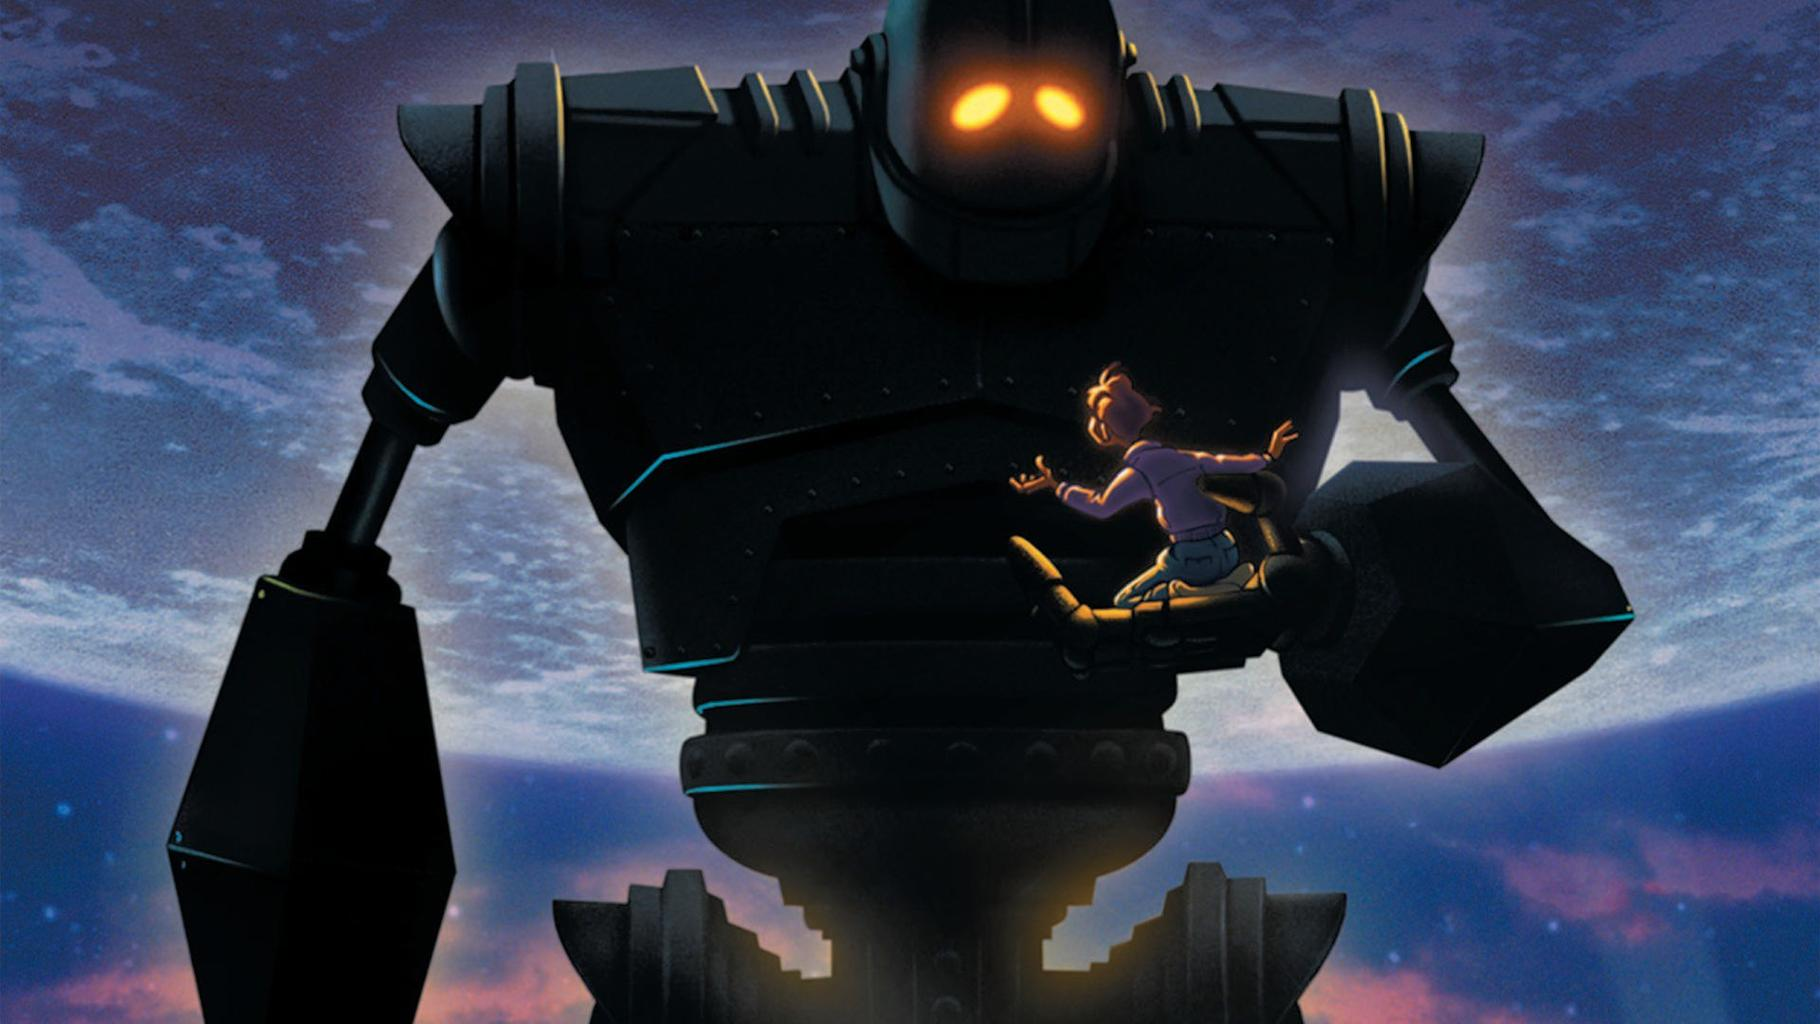 Iron giant game